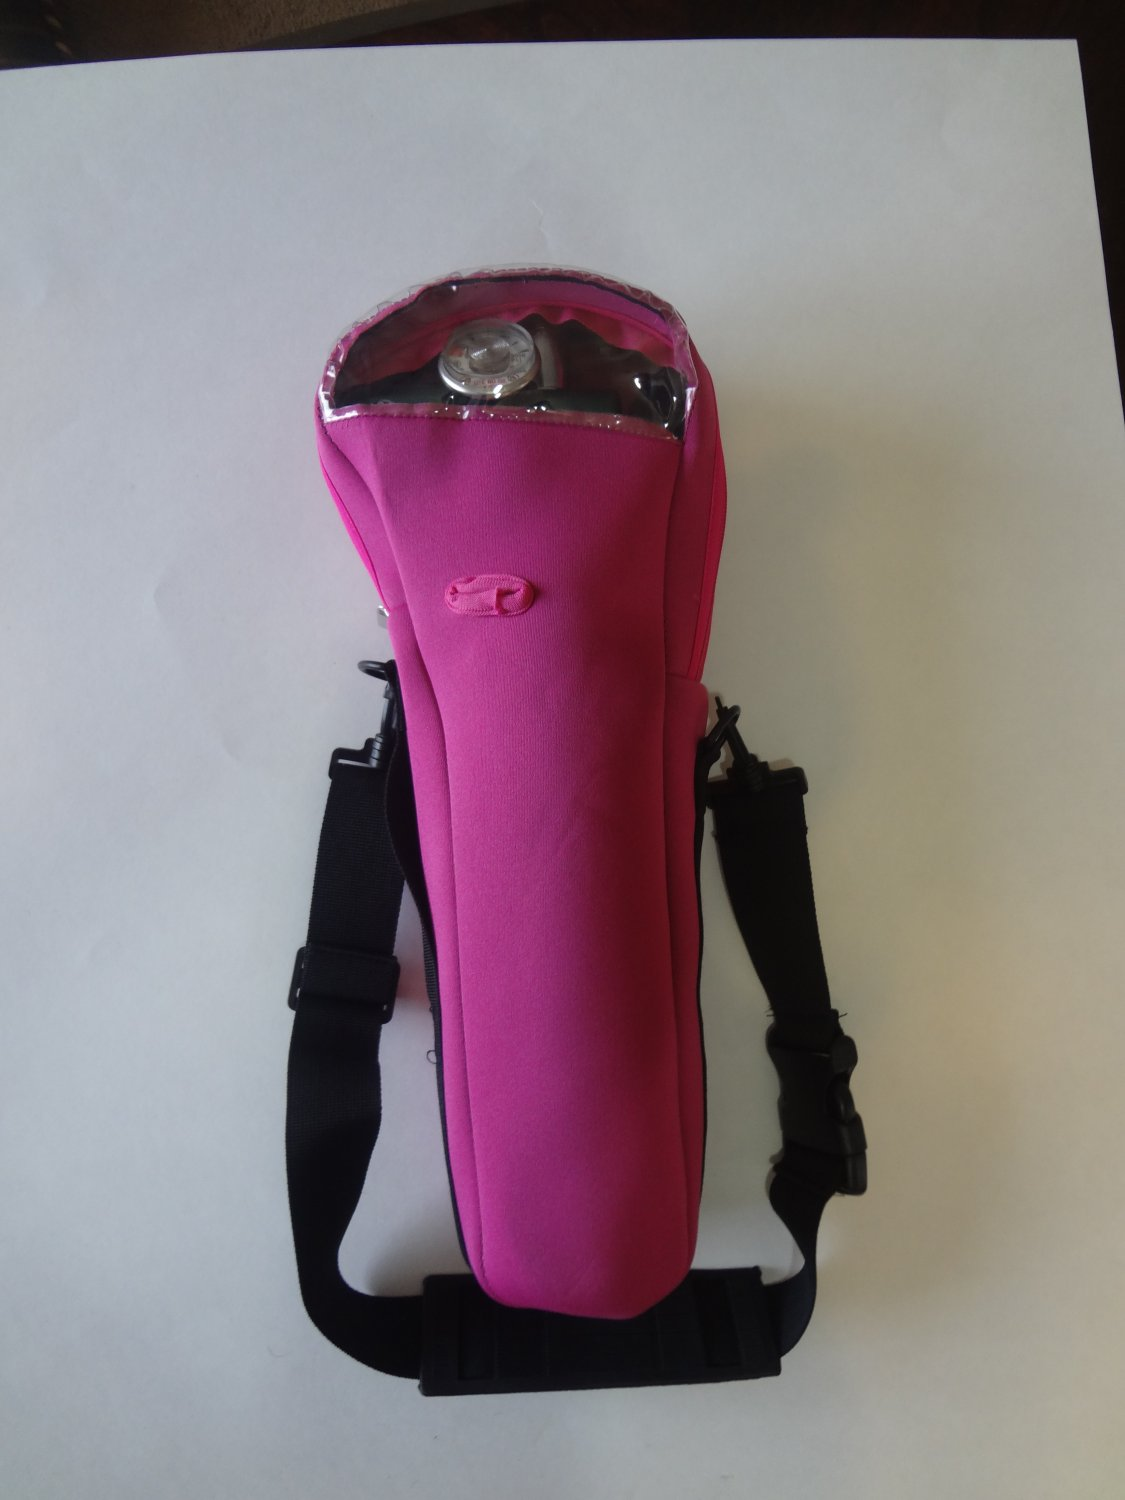 Fuchsia oxygen cylinder carrier for B or M-6 cylinders